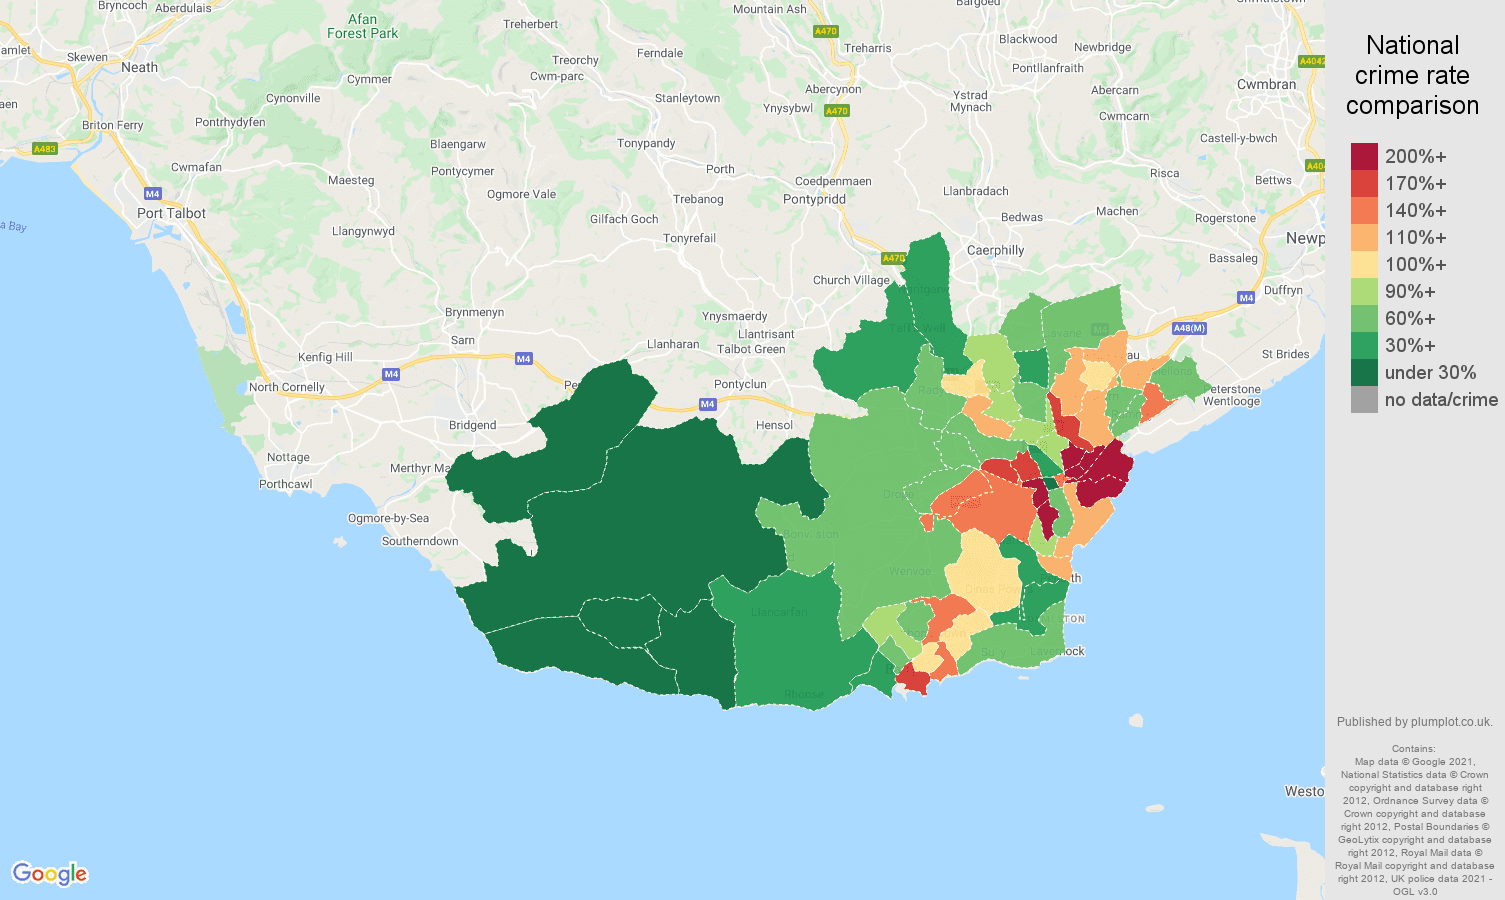 South Glamorgan vehicle crime rate comparison map